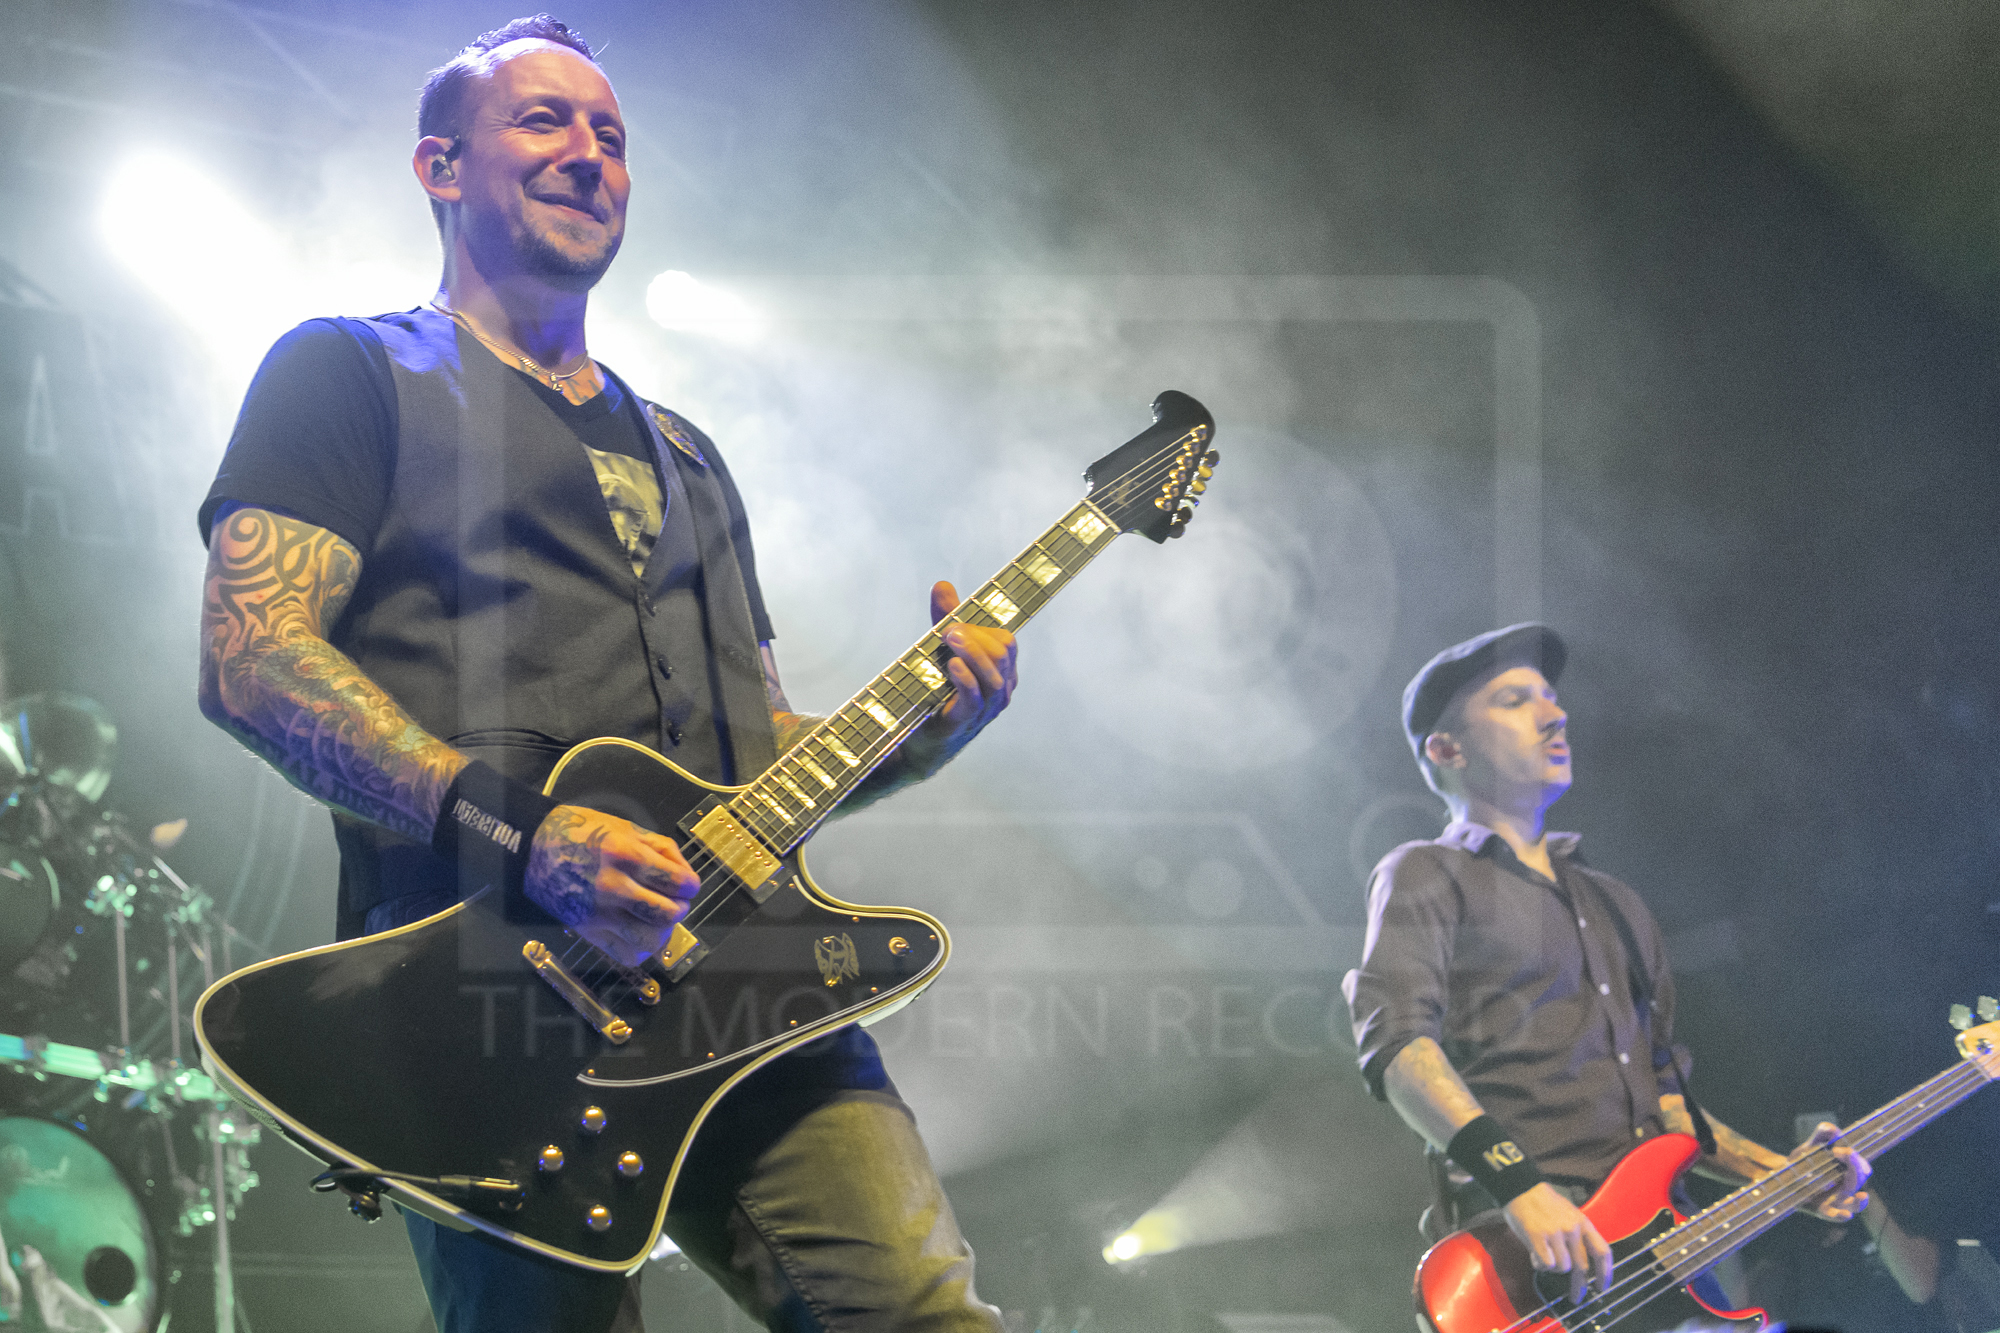 VOLBEAT PERFORMING AT GLASGOW'S O2 ACADEMY - 24.09.2019  PICTURE BY: | GAVIN ROSS PHOTOGRAPHY